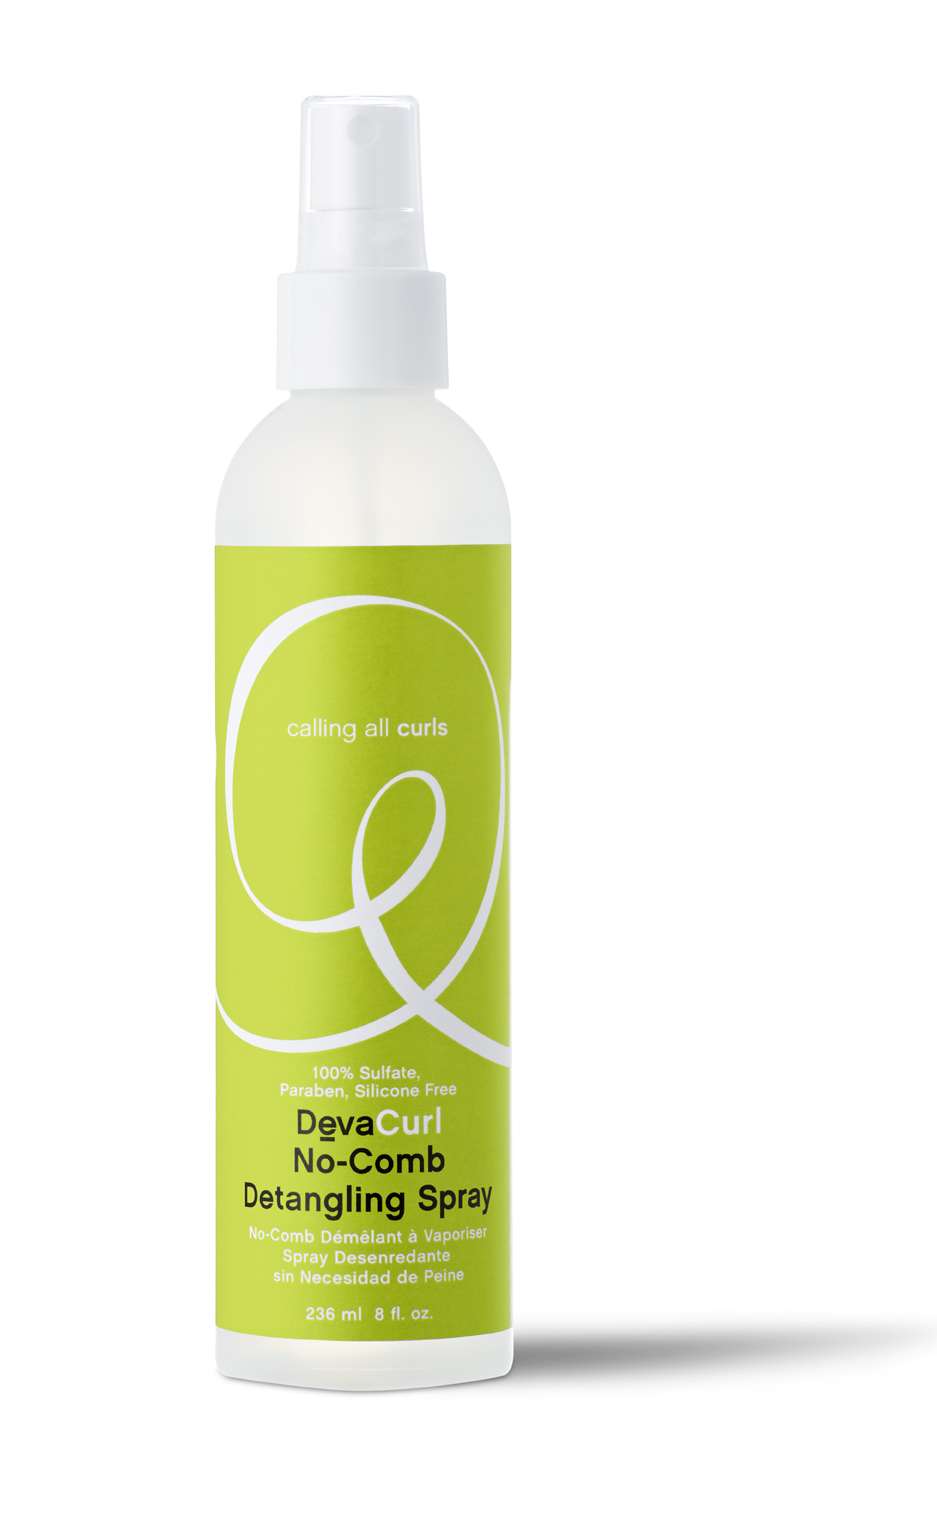 DevaCurl's No-Comb Detangling Spray